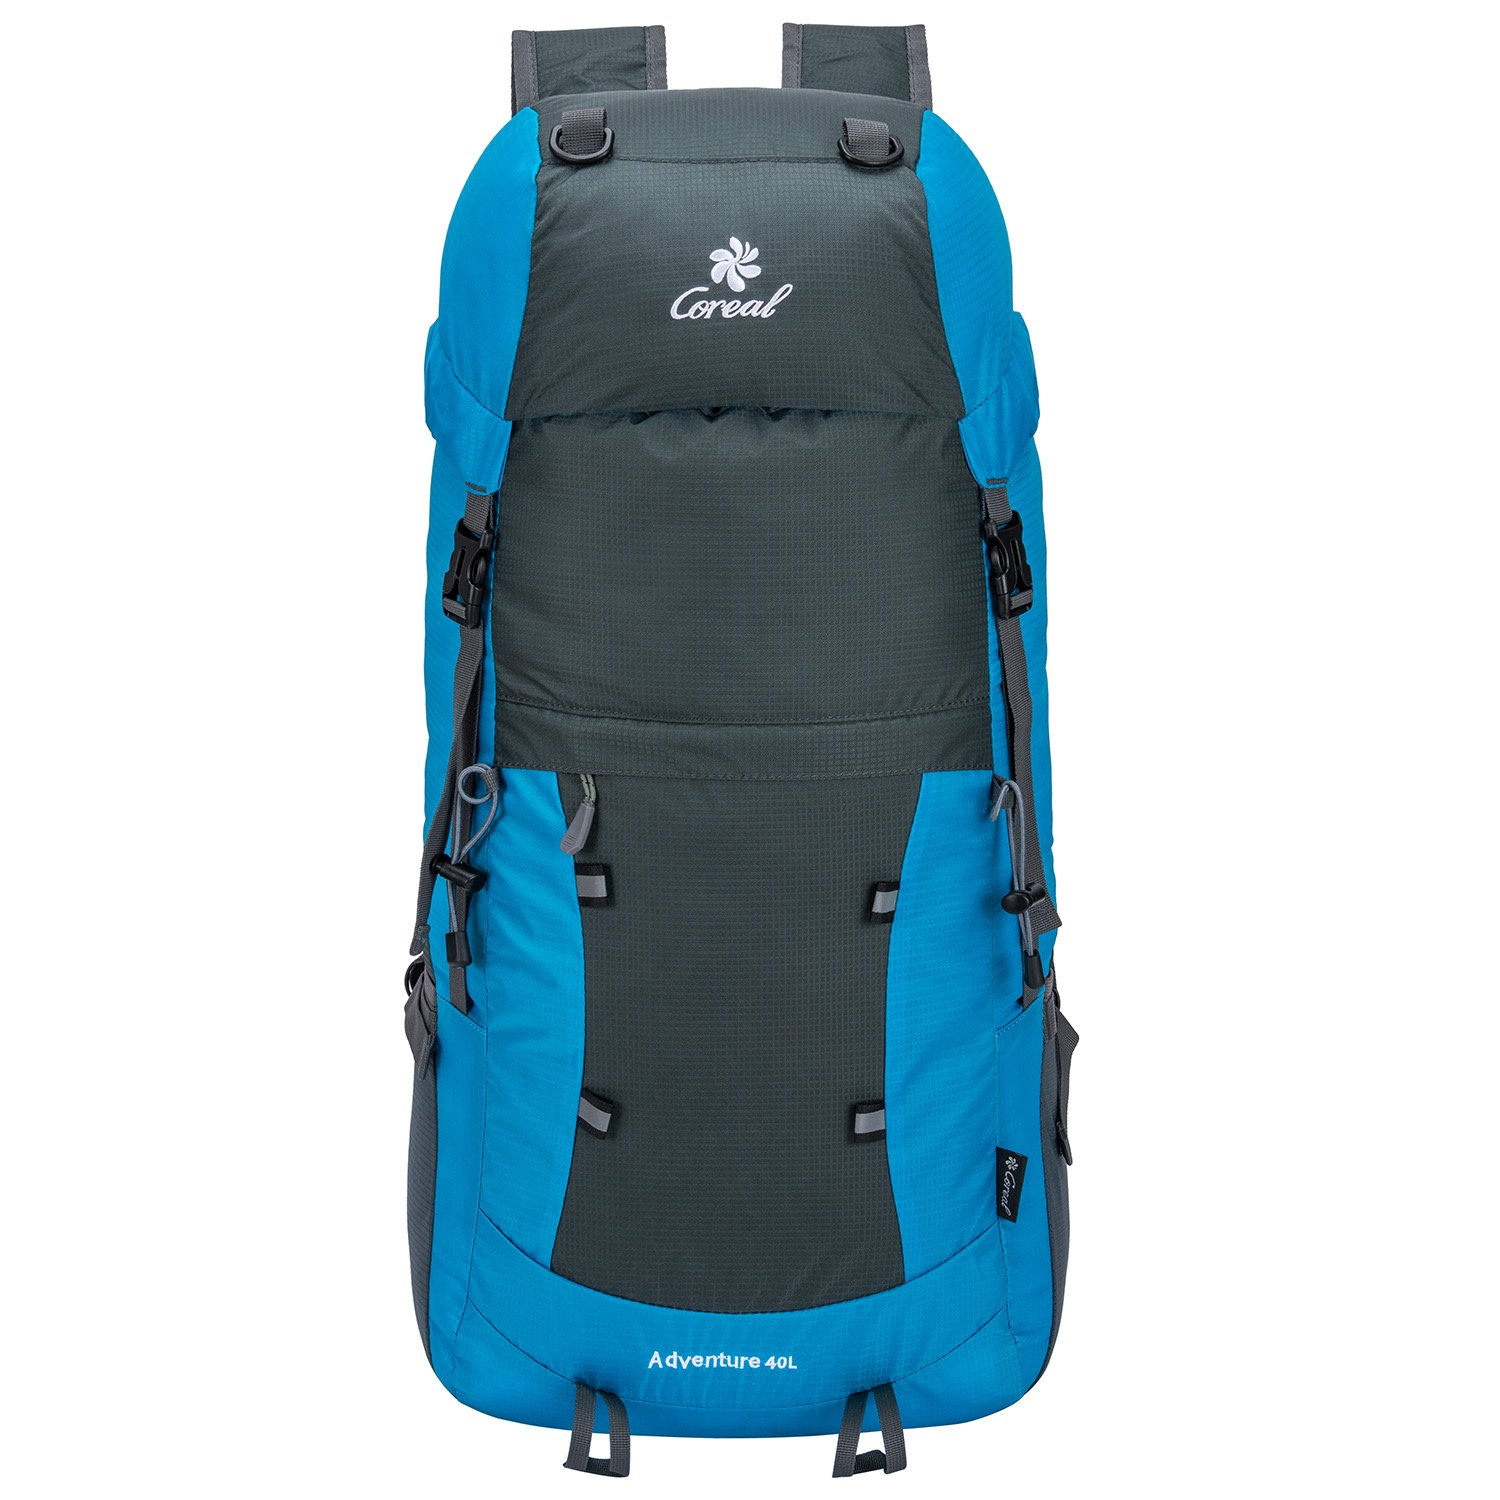 Coreal 40L Lightweight Packable Hiking Backpack Foldable Travel ...